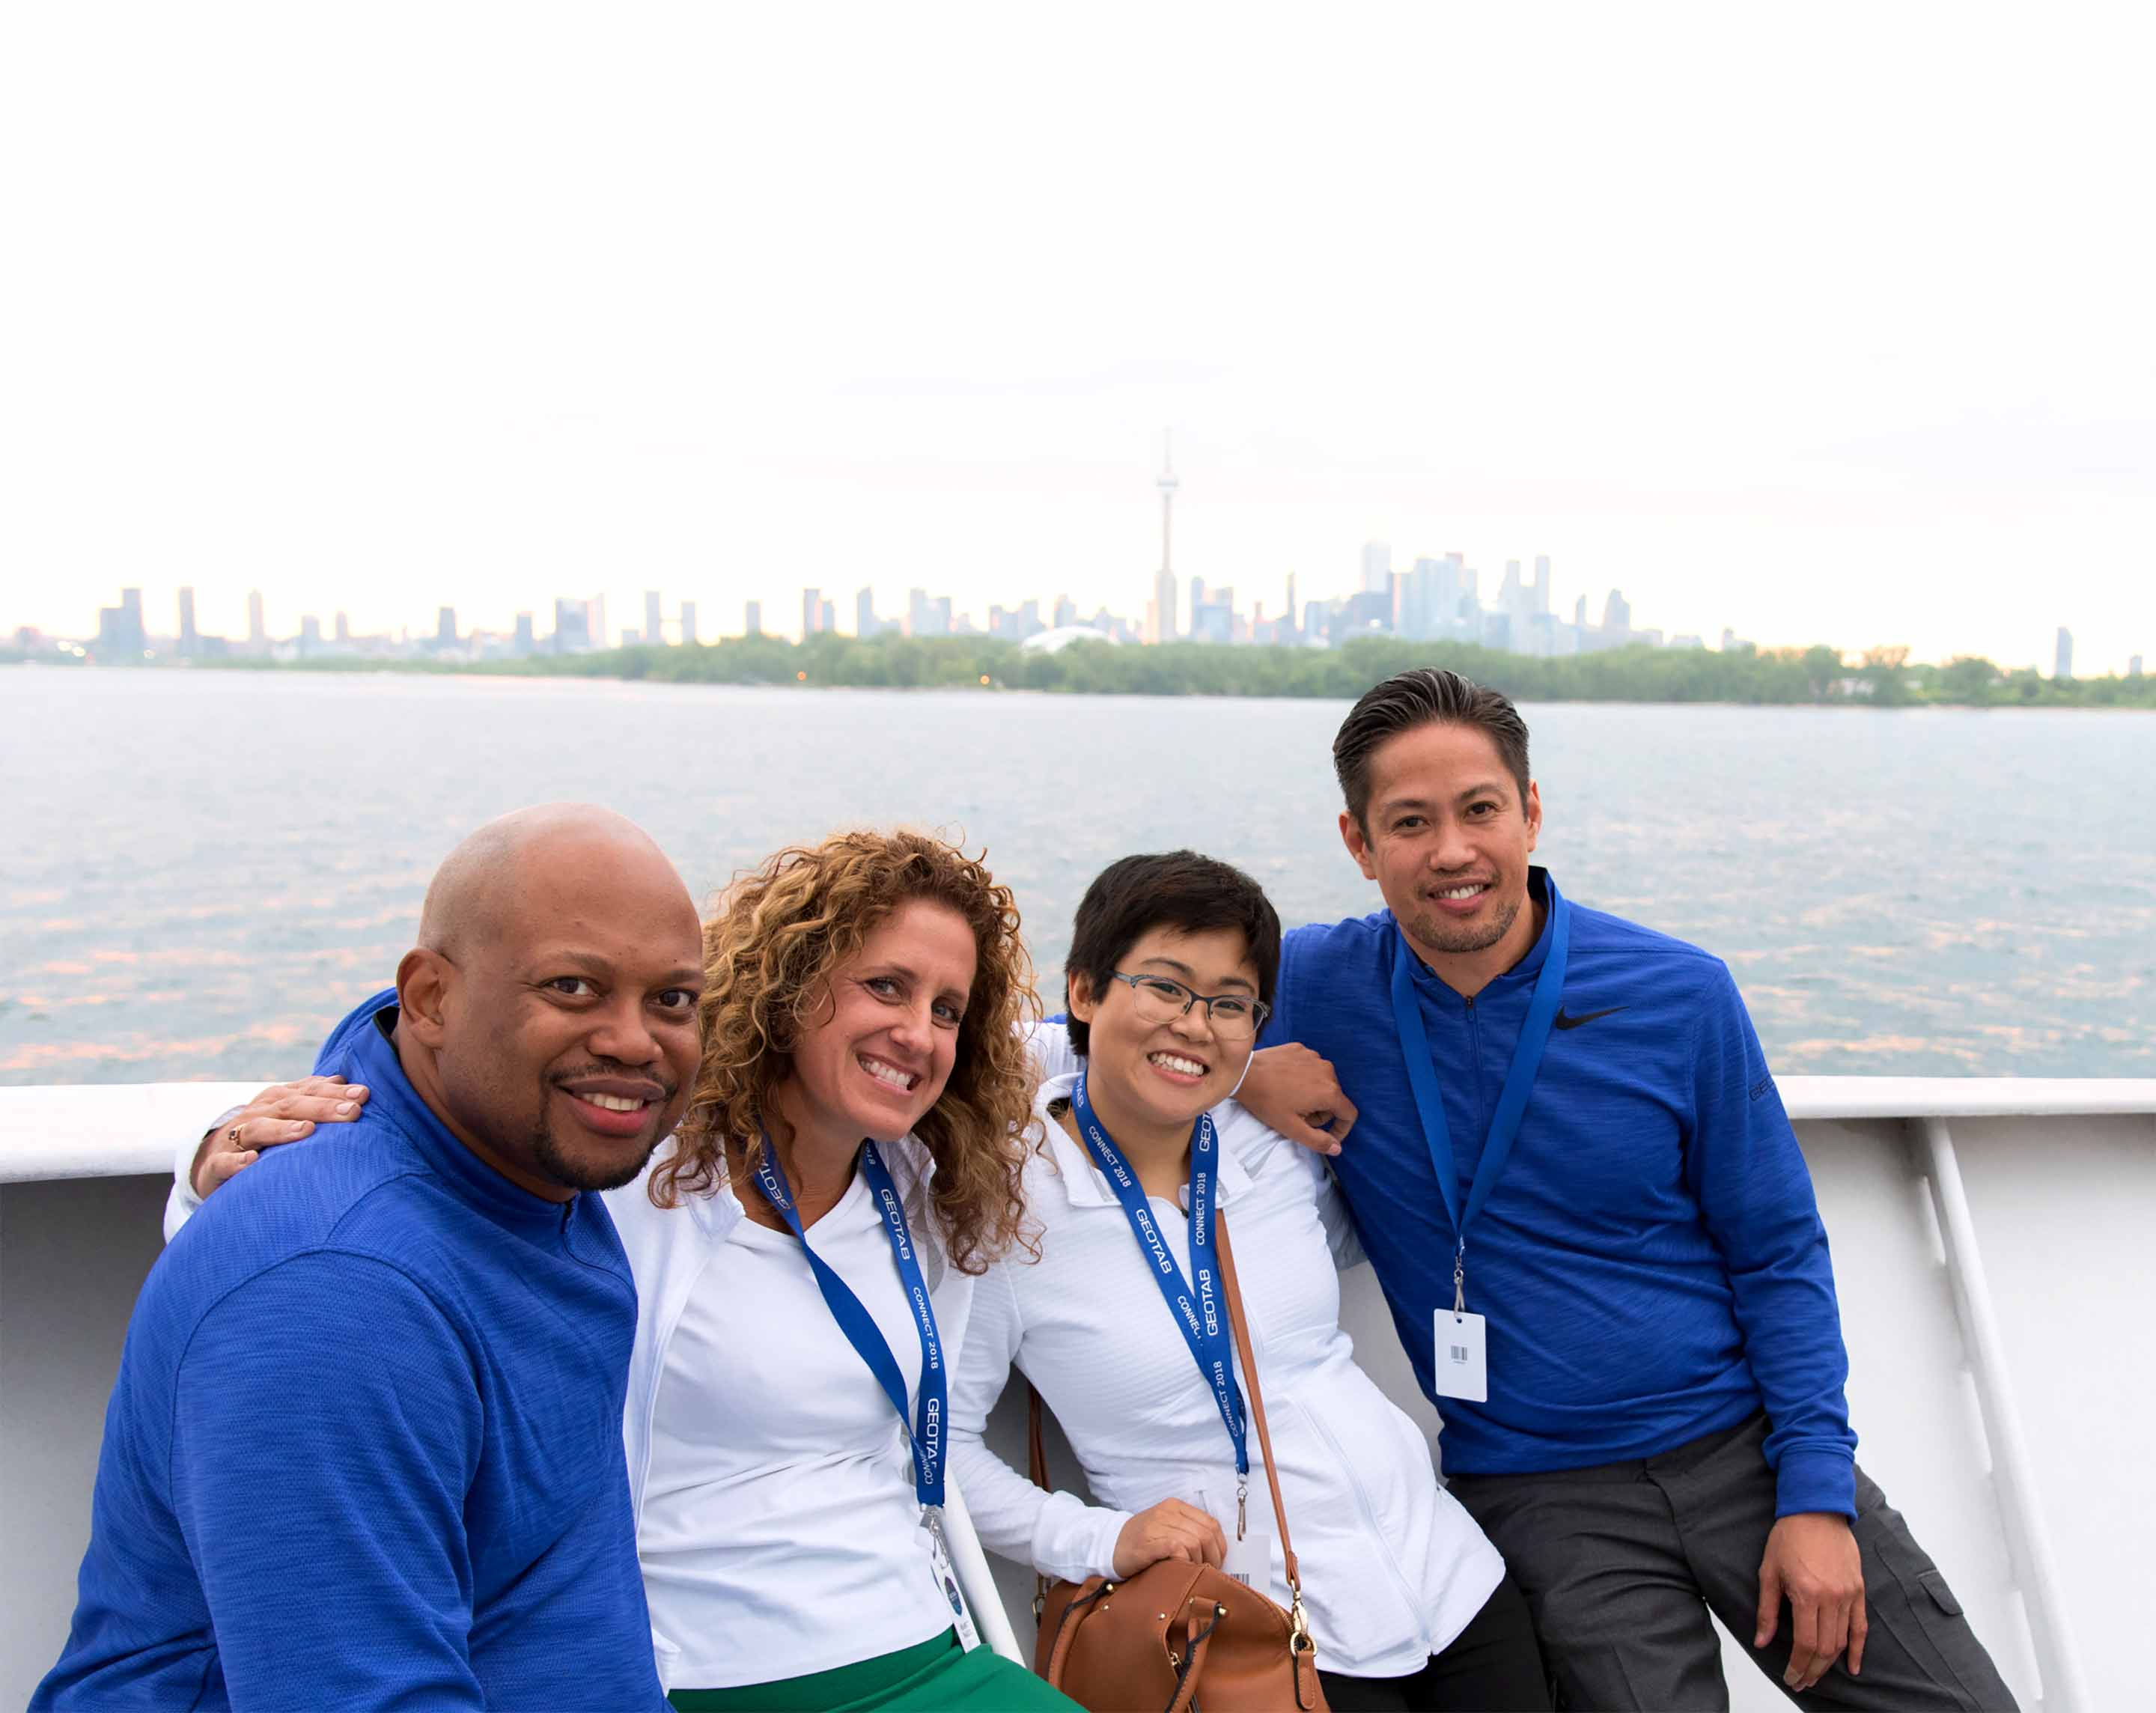 Four Geotab employees smiling while on a boat